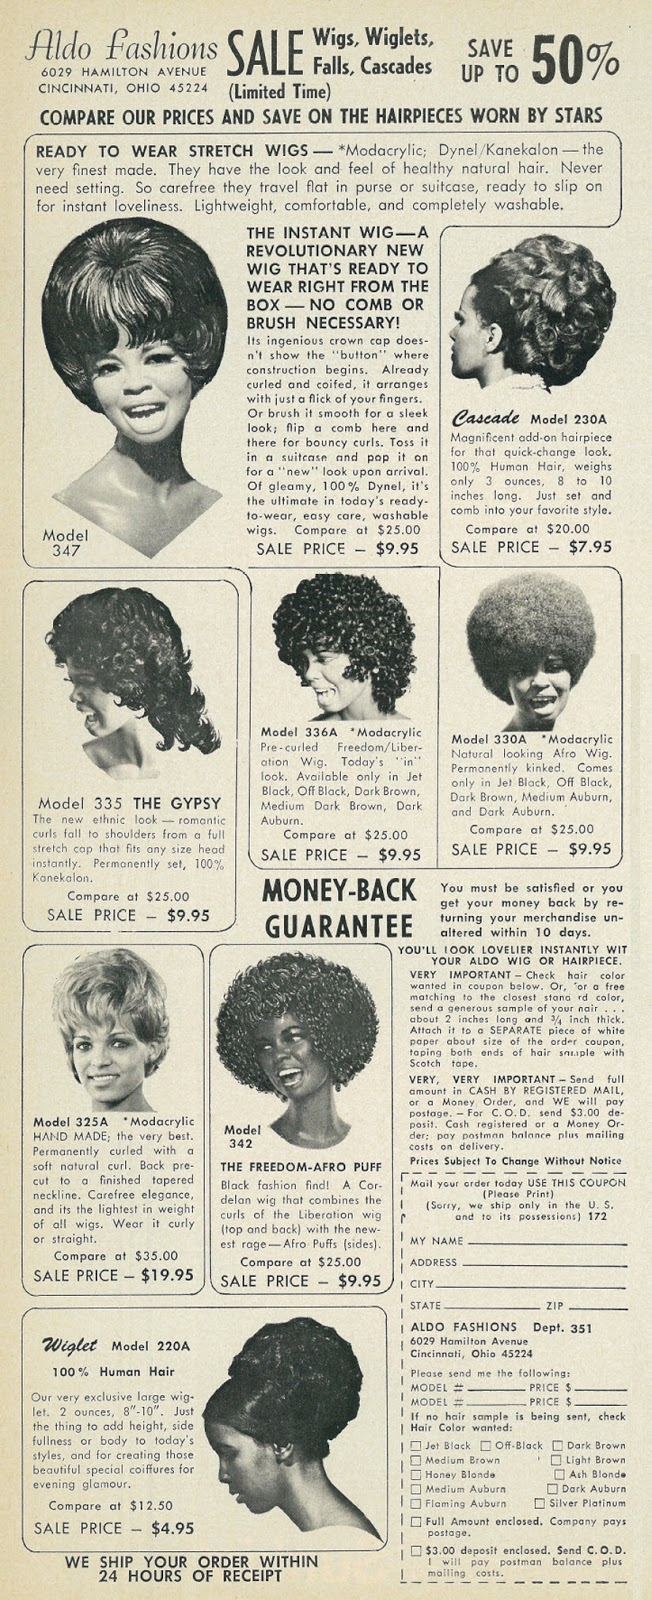 19 Vintage Ads for Fashion Wigs and Hairpieces From the 1960s and 70s  vintage everyday